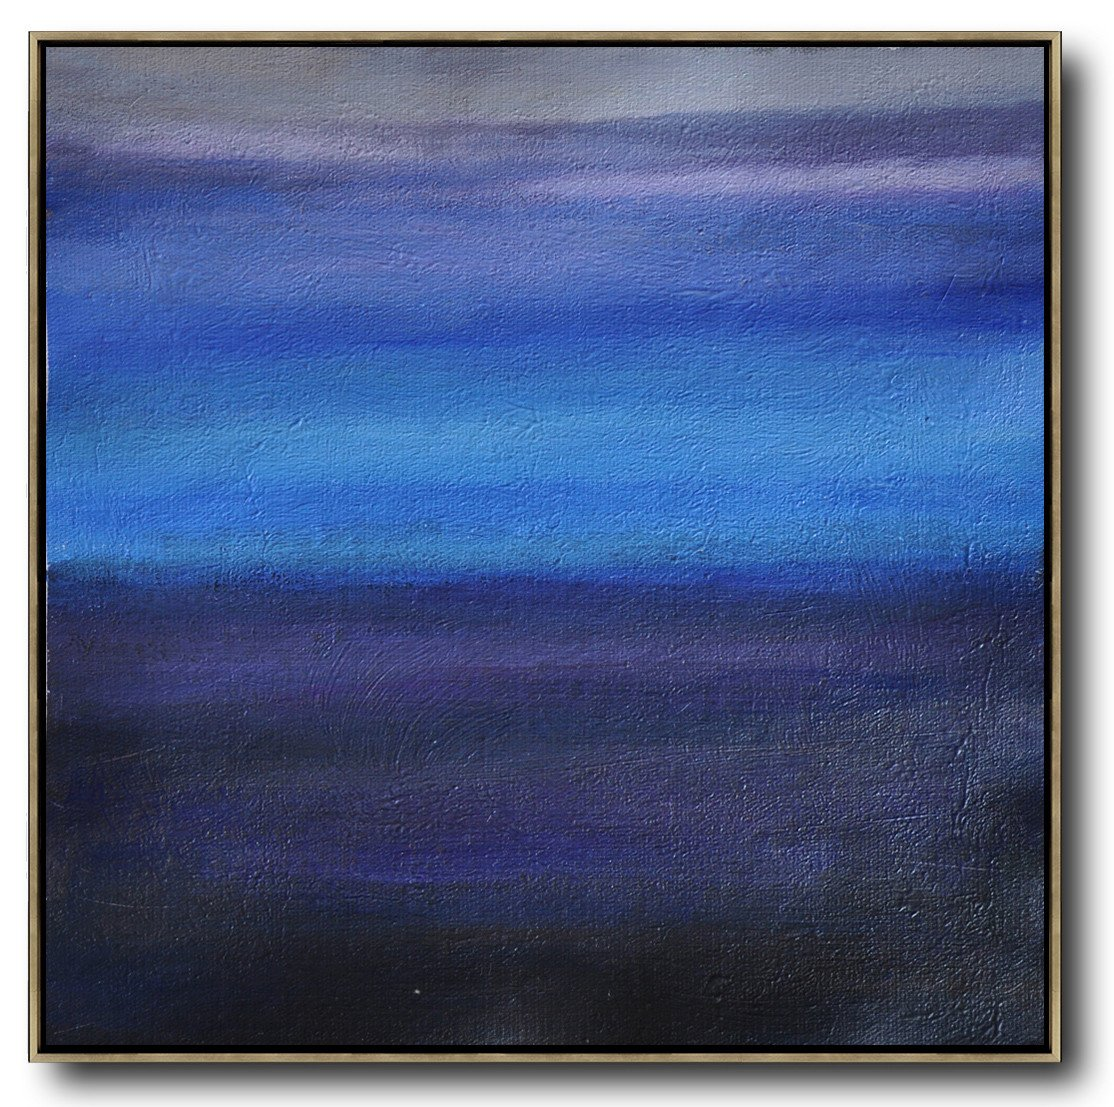 Abstract Painting Extra Large Canvas Art,Oversized Abstract Landscape Painting,Modern Wall Decor,Gray,Blue,Black.etc